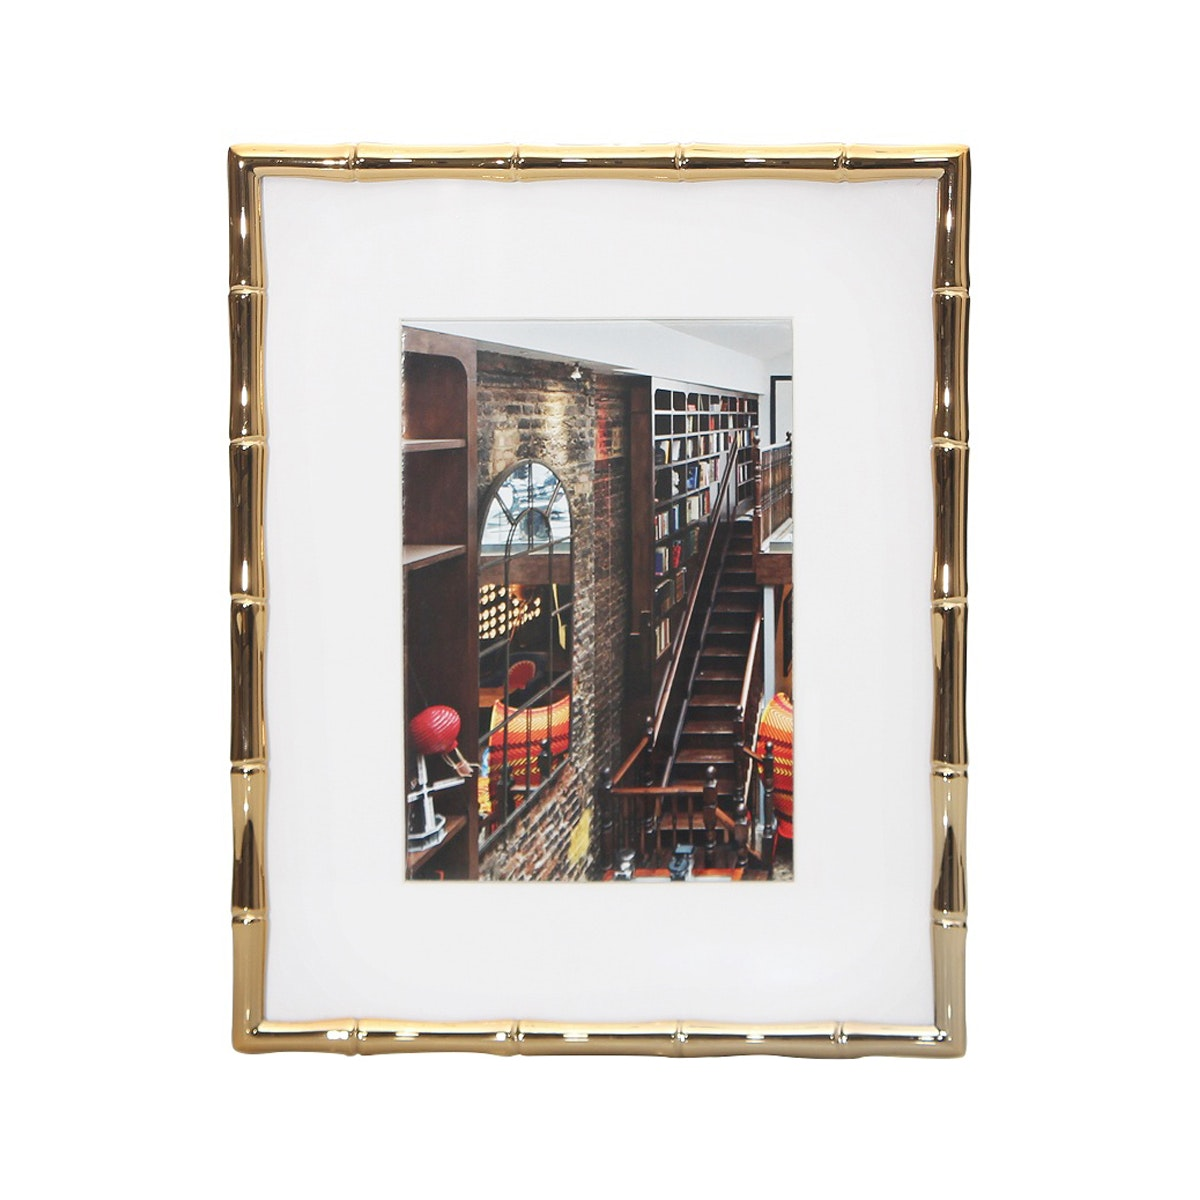 VIVERE Photo Frame Std Bamboo Gold 5 x 7 Inch